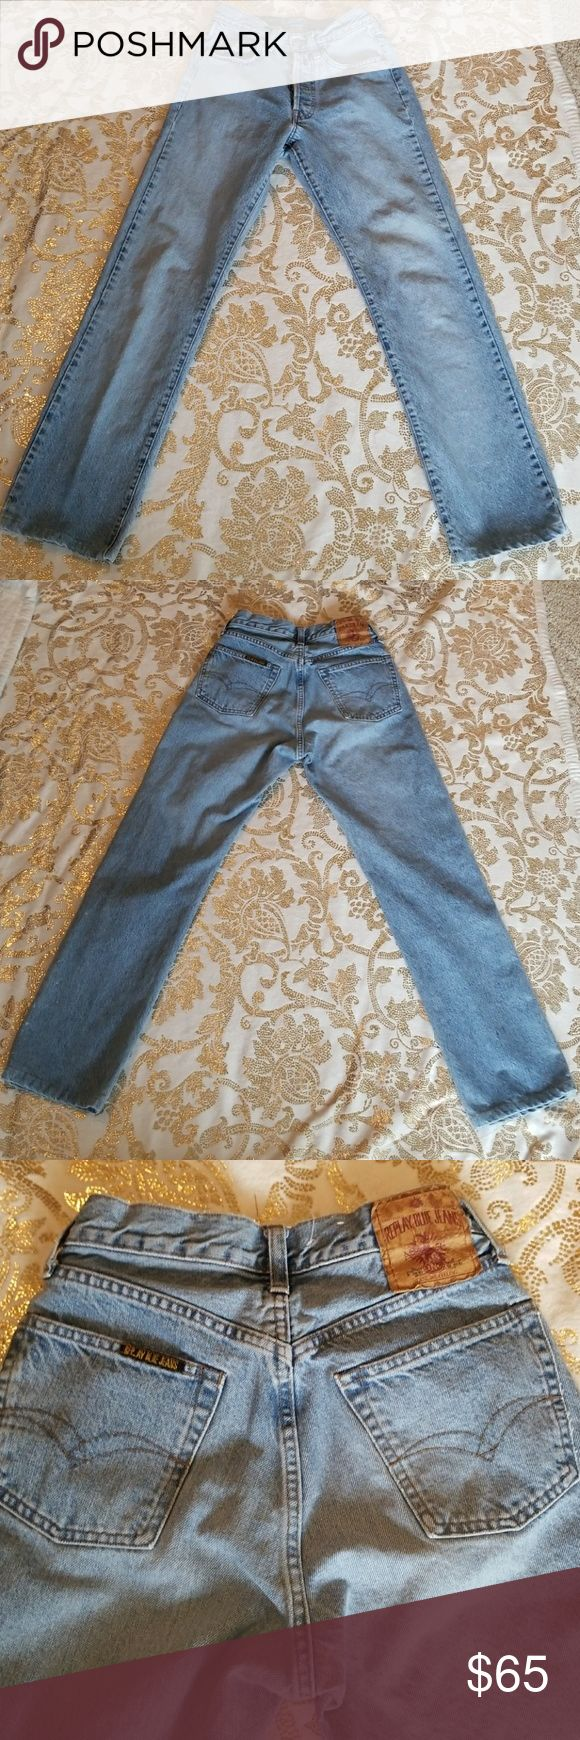 REPLAY JEANS VINTAGE 1990S High end Made in Italy buttonfly denim  Rise 10 Length 38 Inseam 29 Waist circumference 26 Replay Jeans